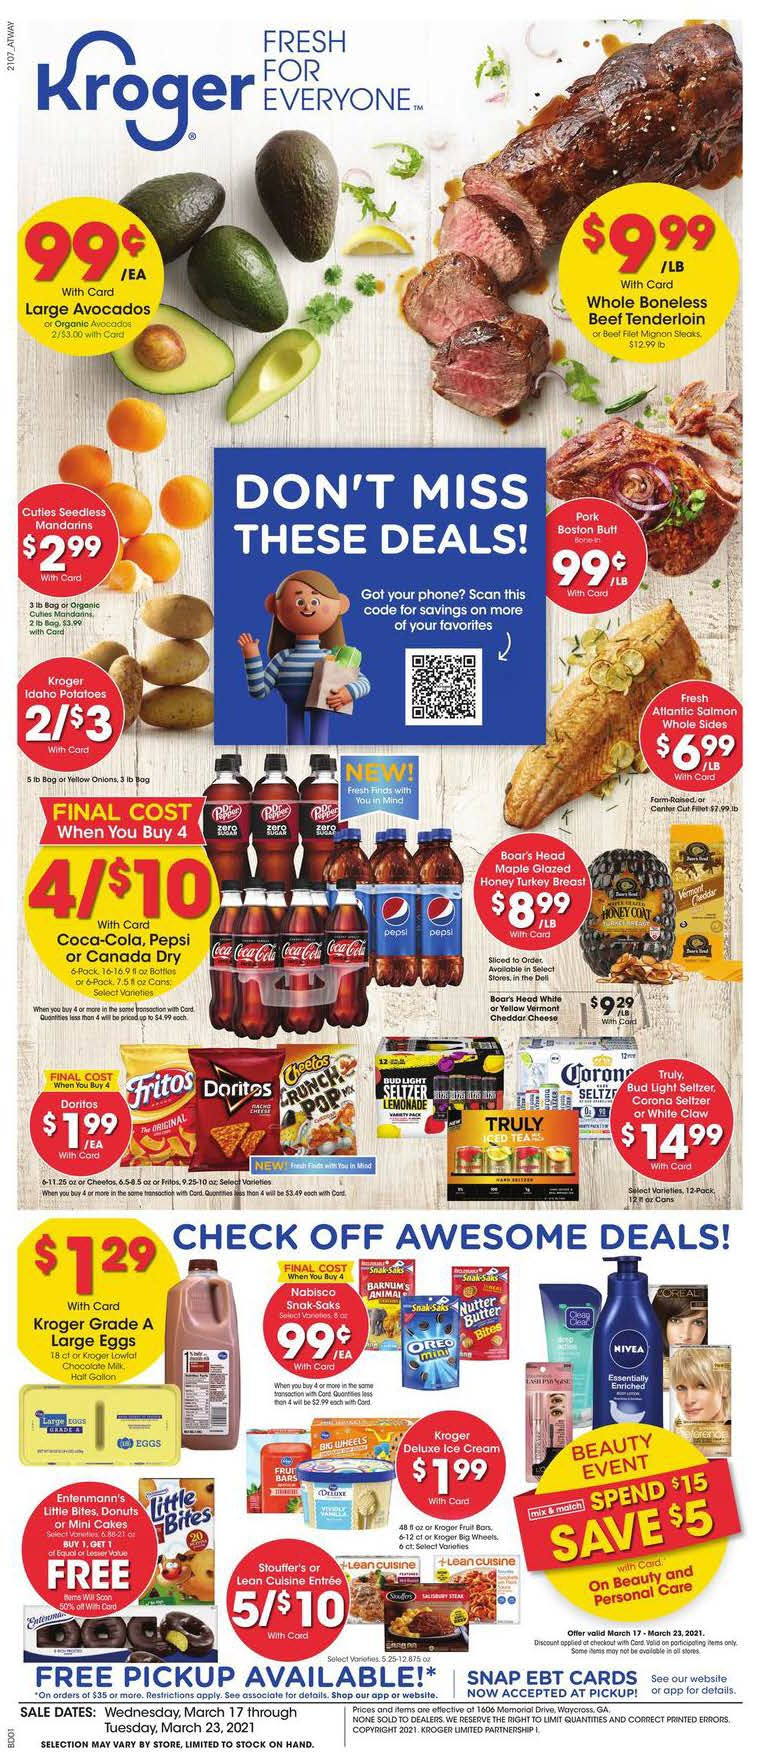 Kroger Weekly Ad (3/17/21 - 3/23/21) Preview